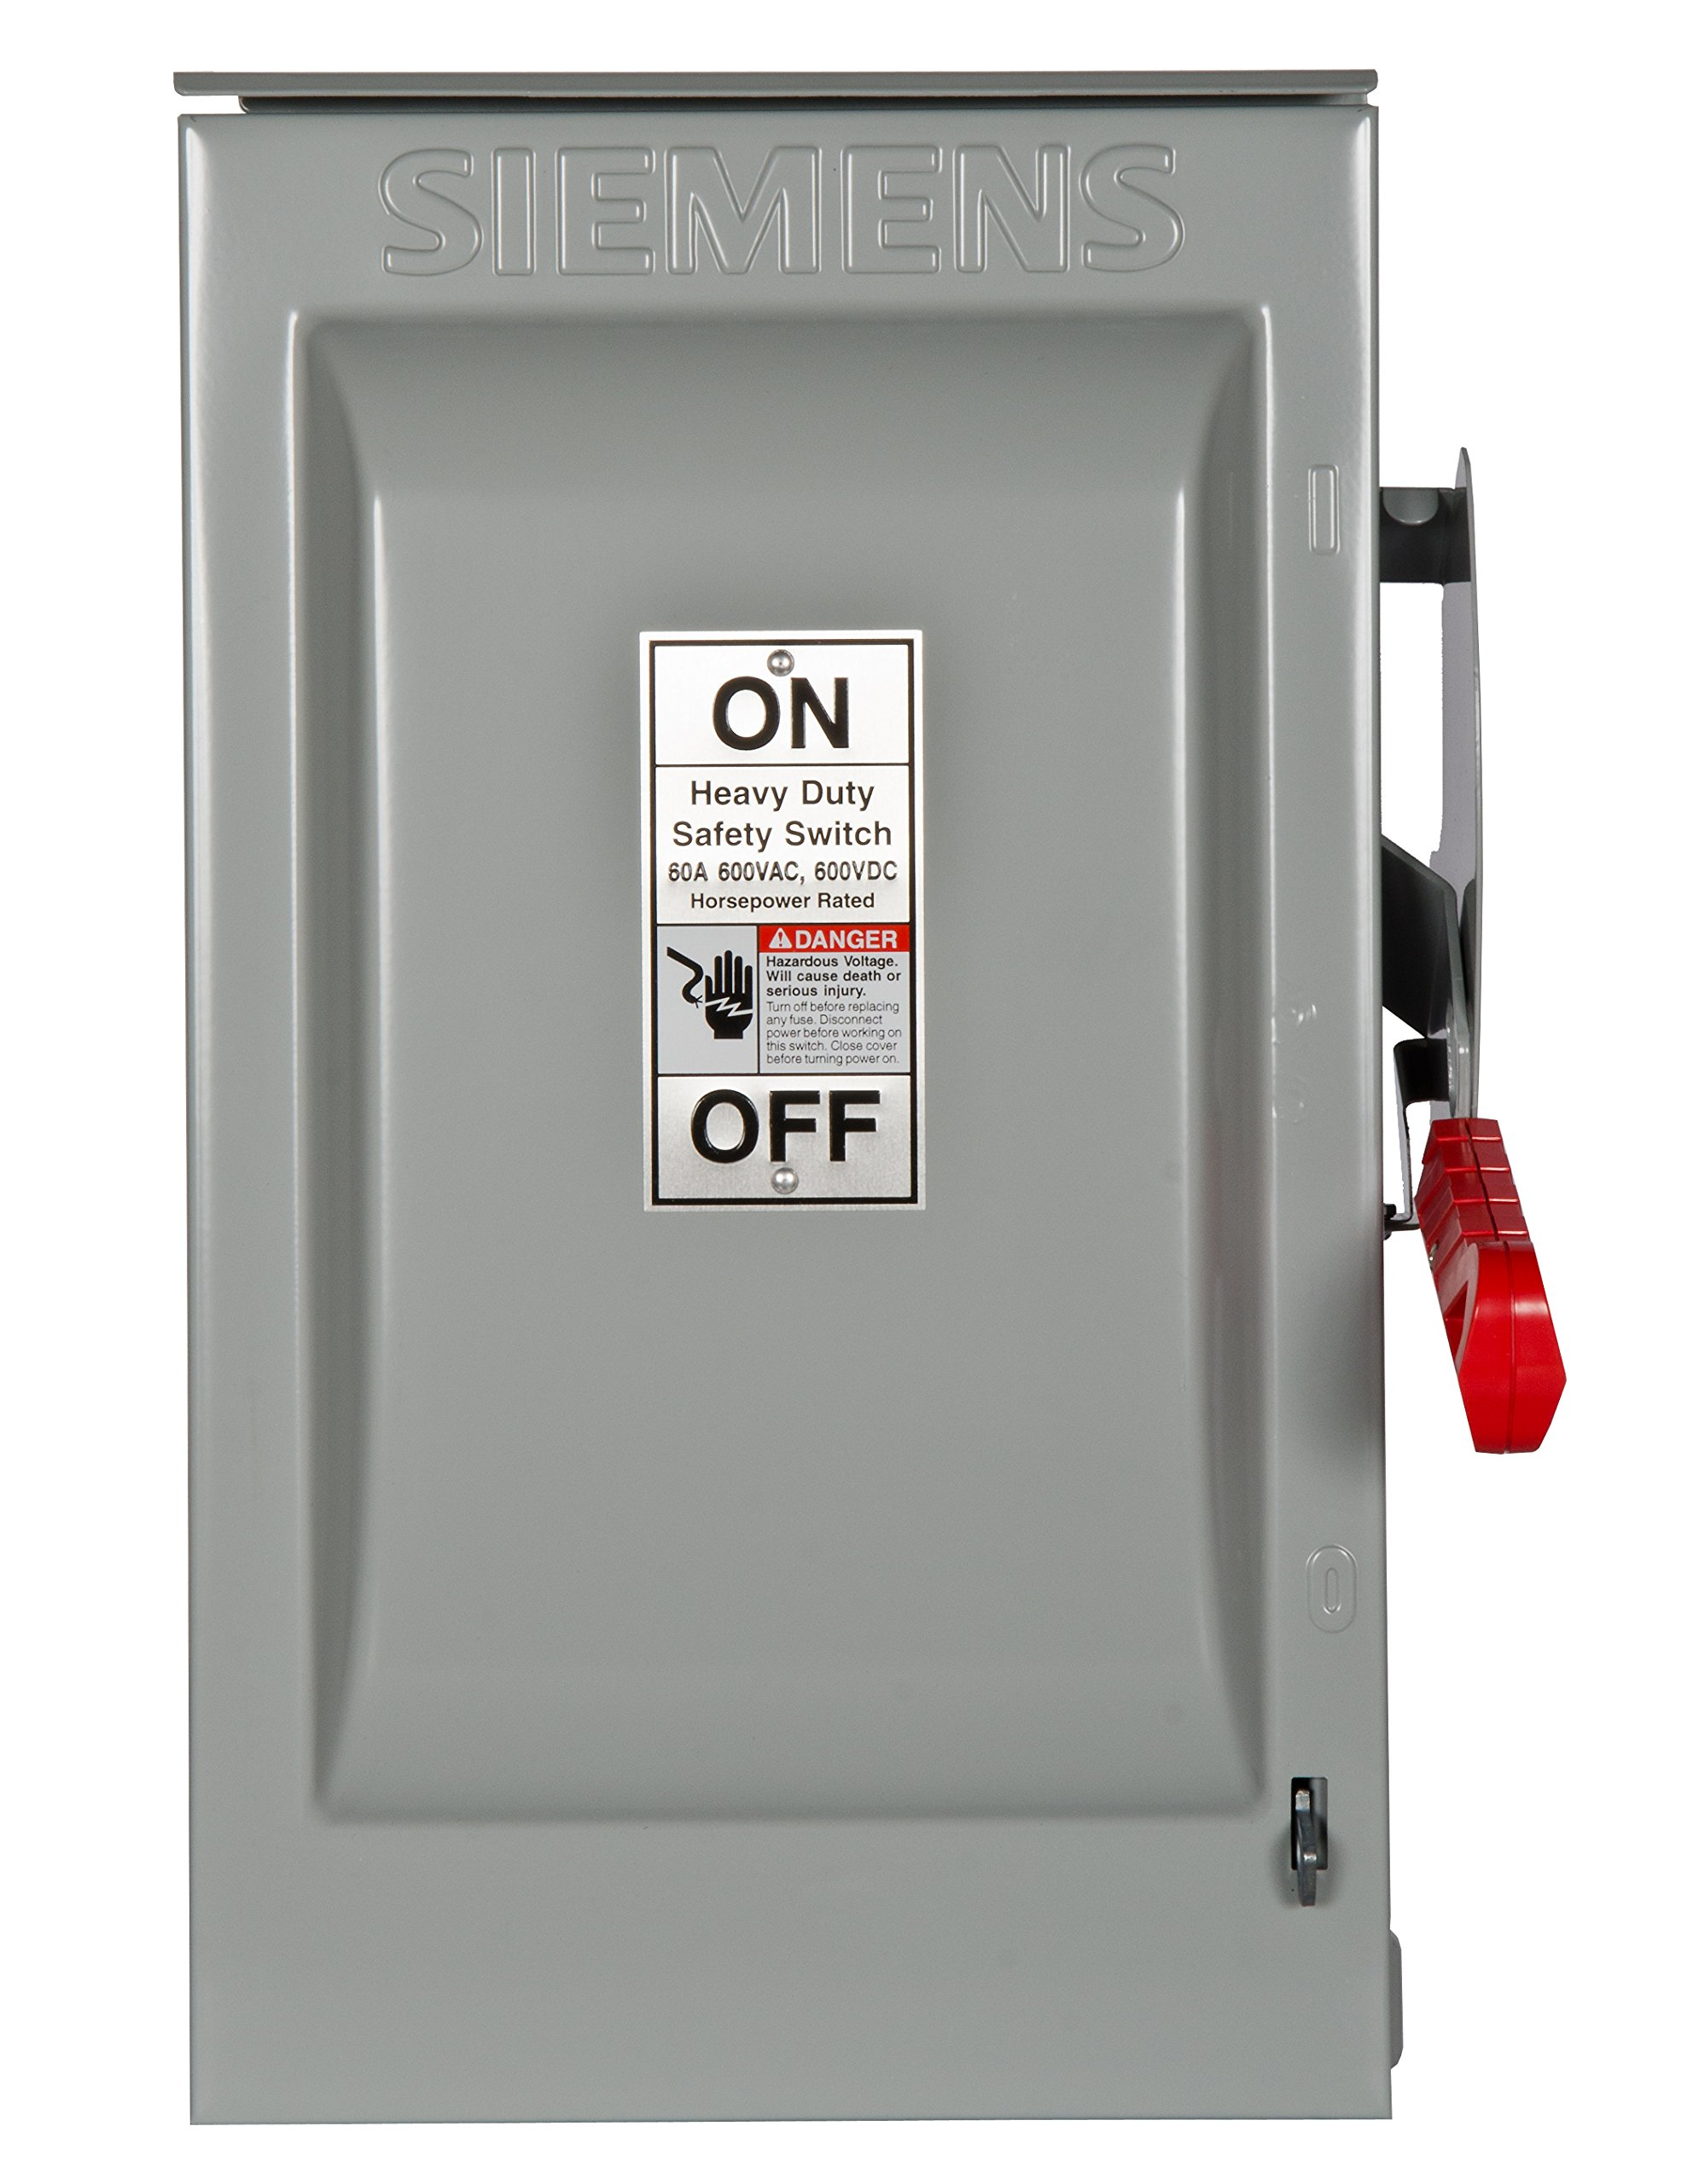 Siemens HNF362R 60-Amp 3 Pole 600-volt 3 Wire Non-Fused Heavy Duty Safety Switches by SIEMENS